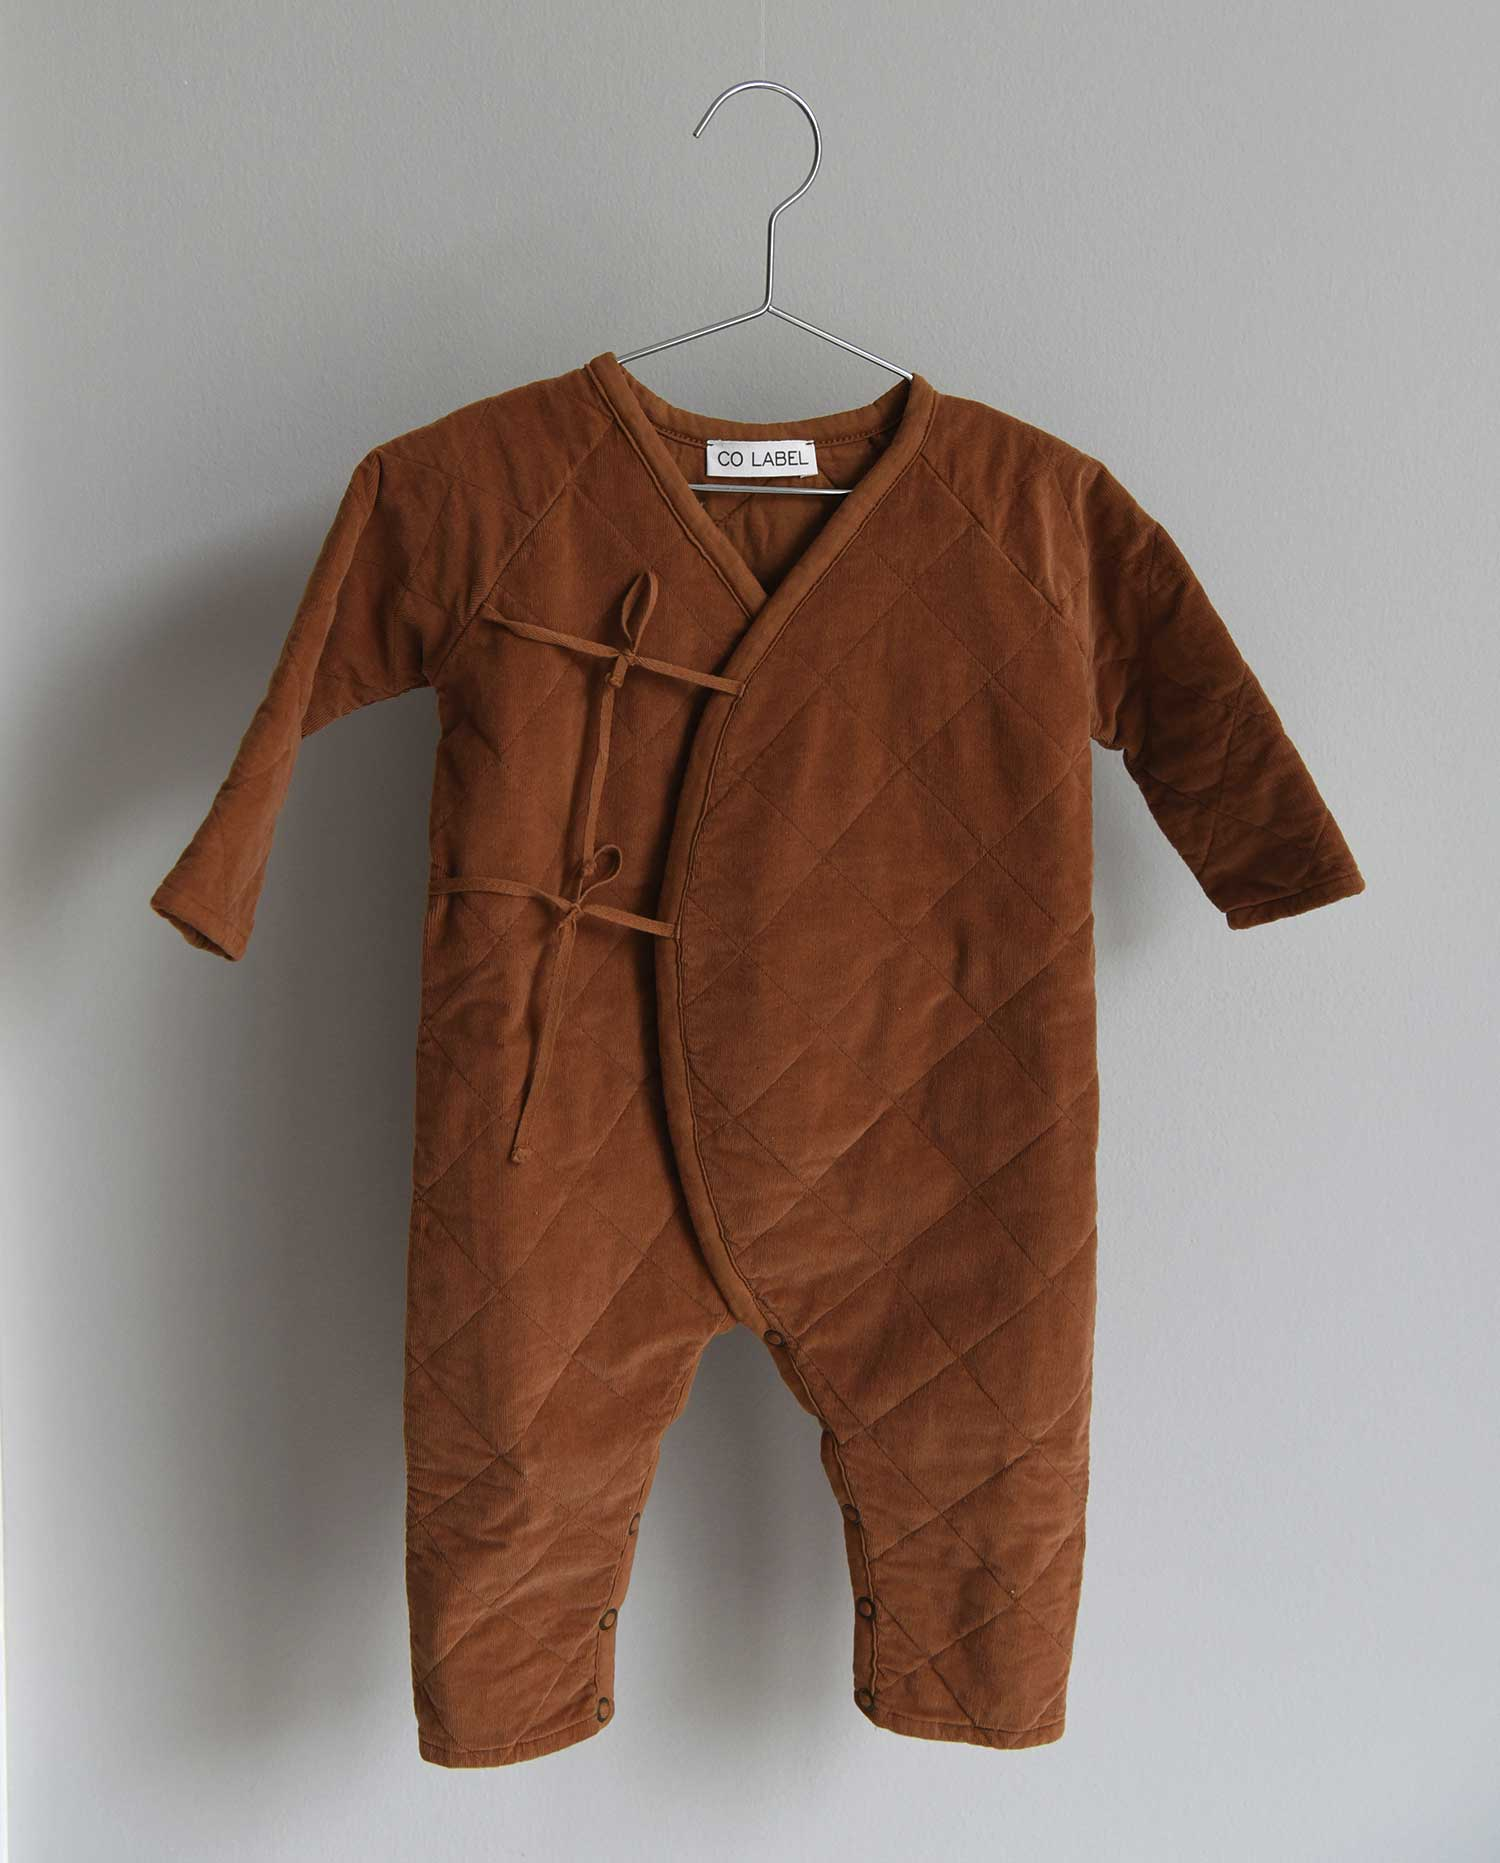 CO LABEL Eddie babysuit - Tabacco -